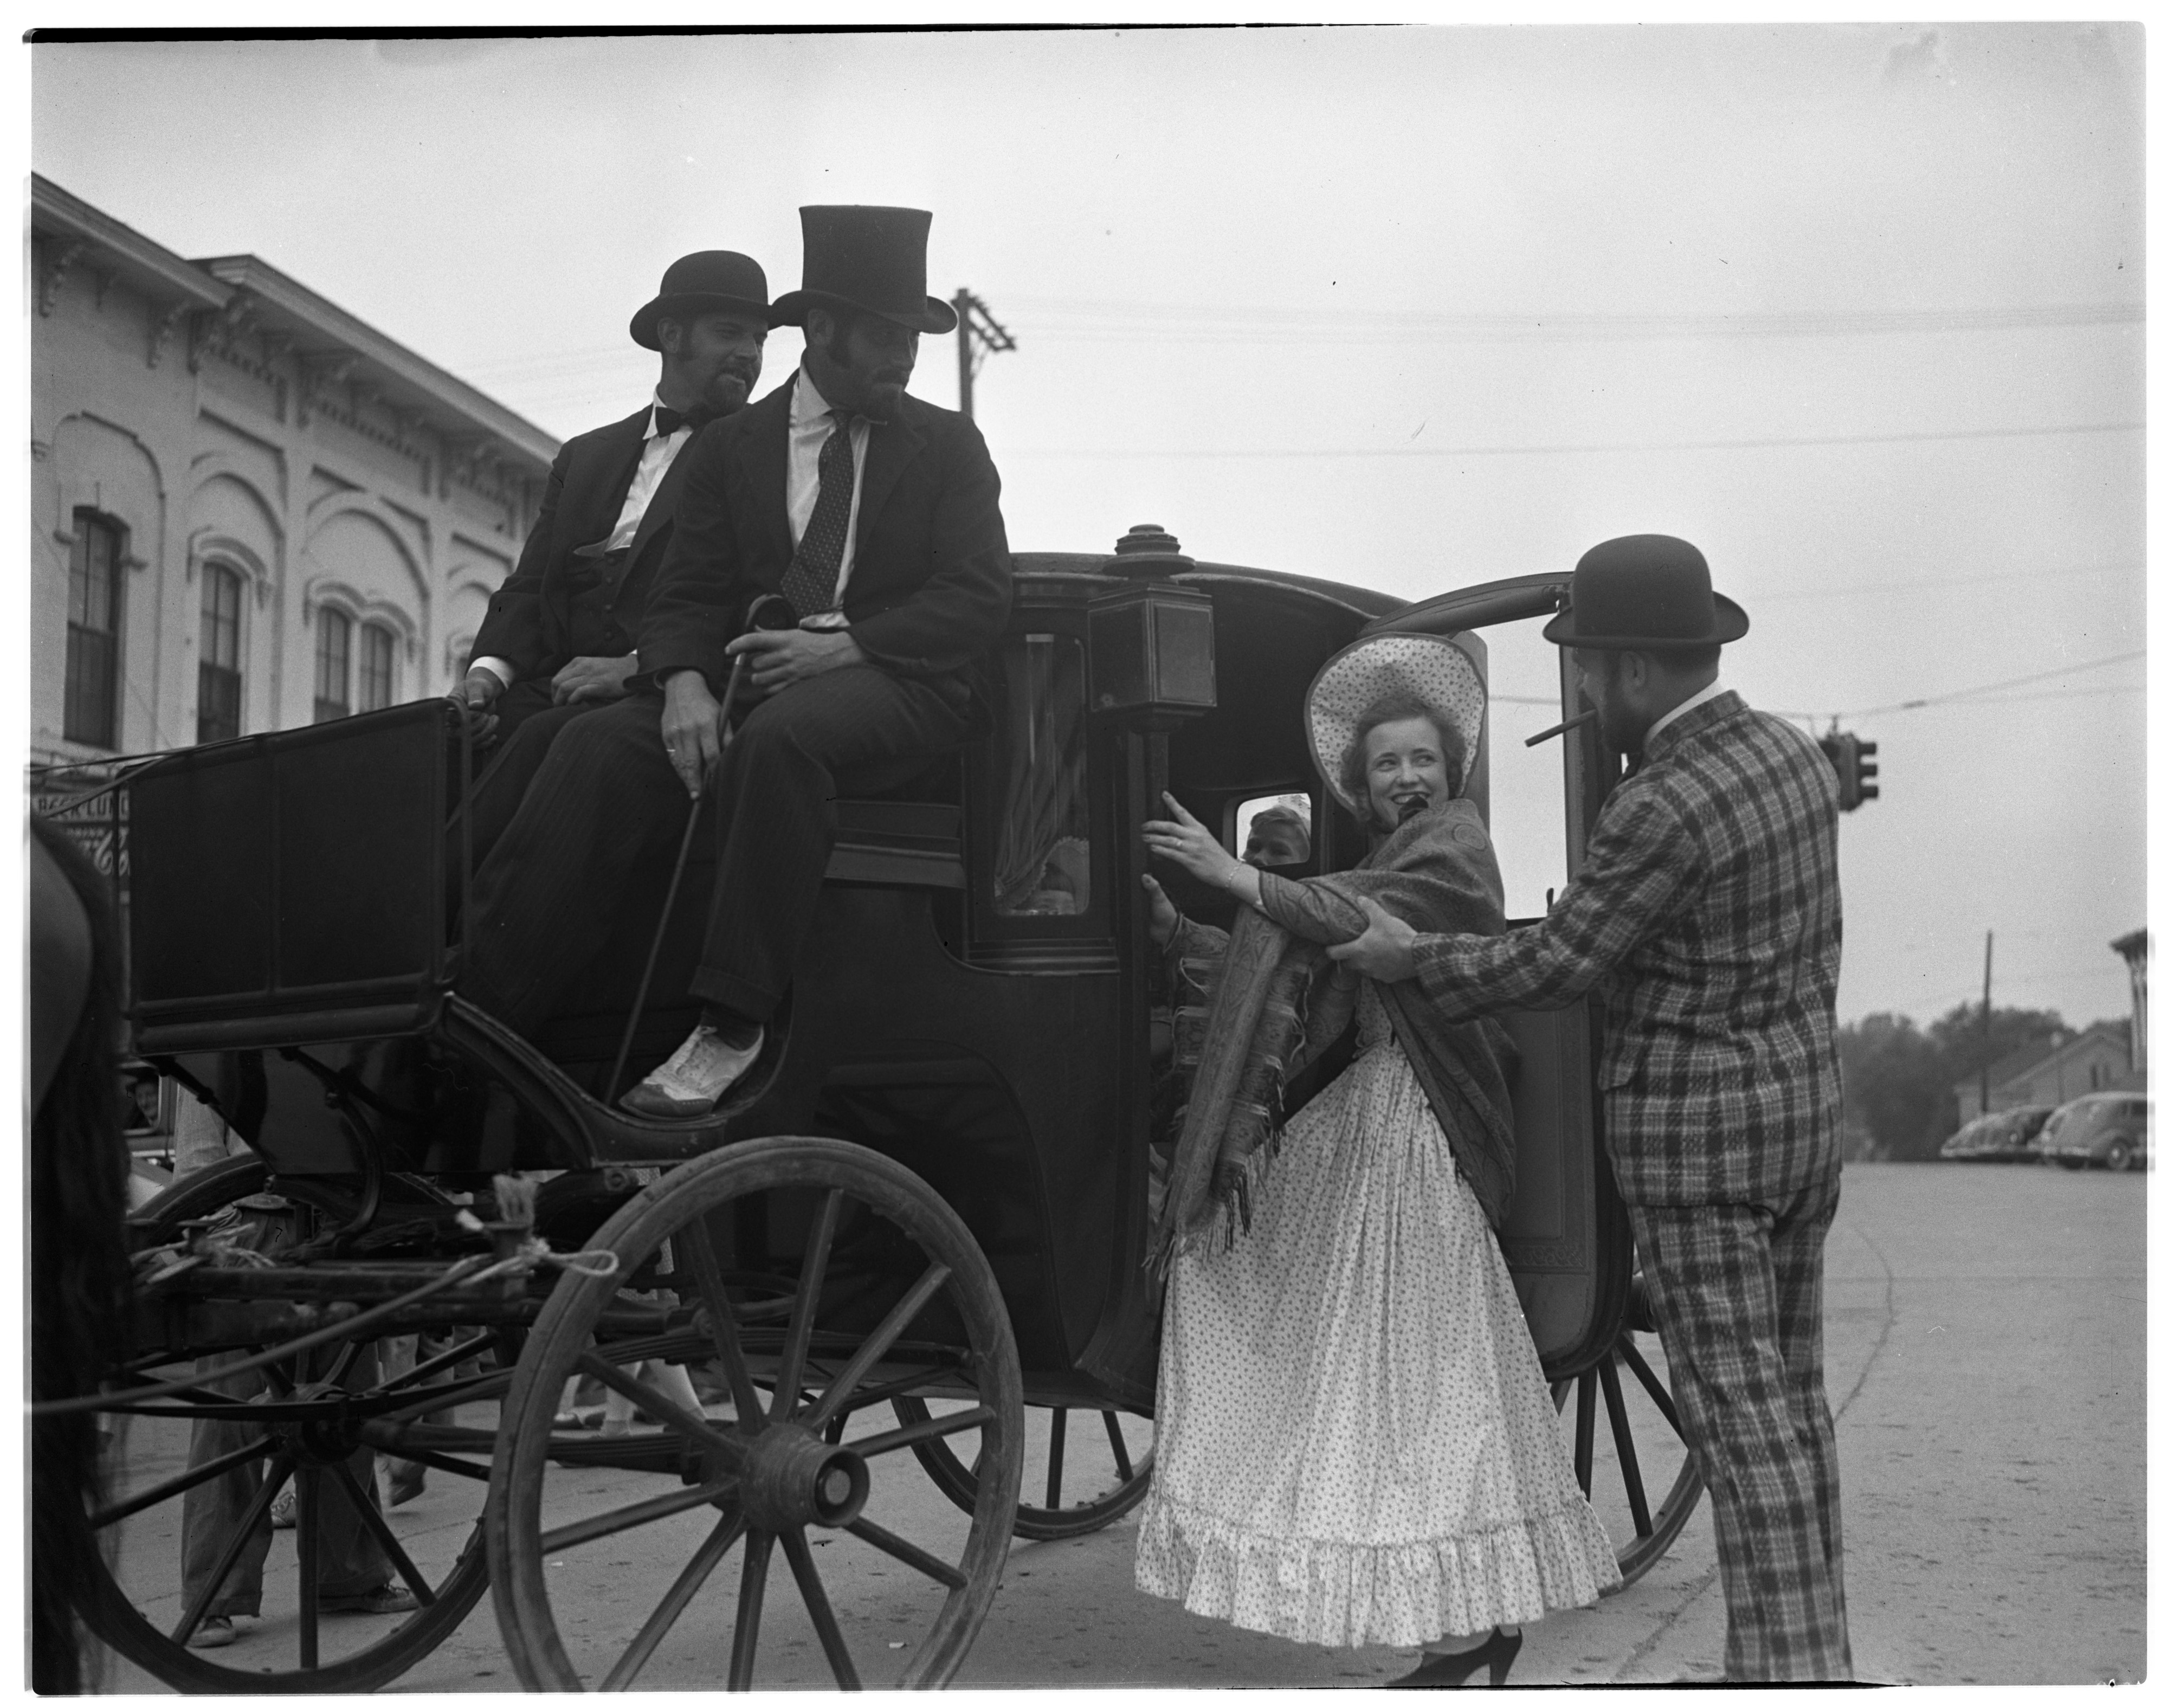 Carriage Ride, Dexter Pageant, 1941 image